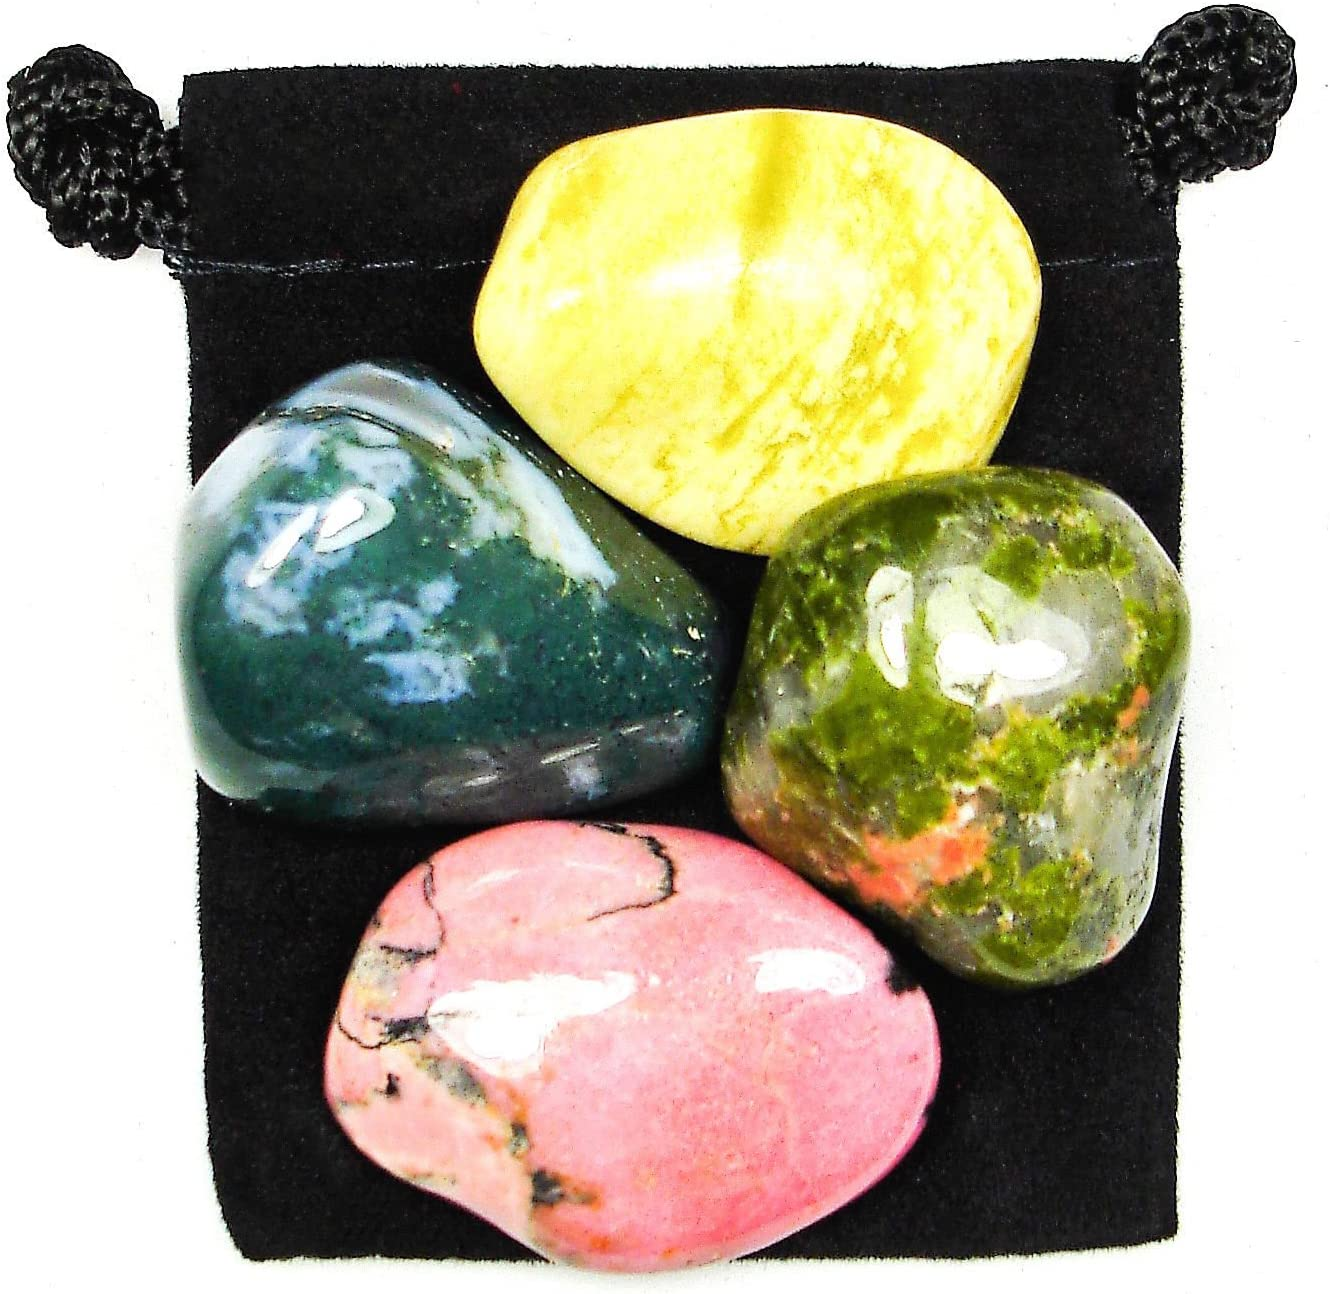 Emotional Balance Tumbled Crystal Healing Pouch Ranking TOP19 Descr Set with Recommendation